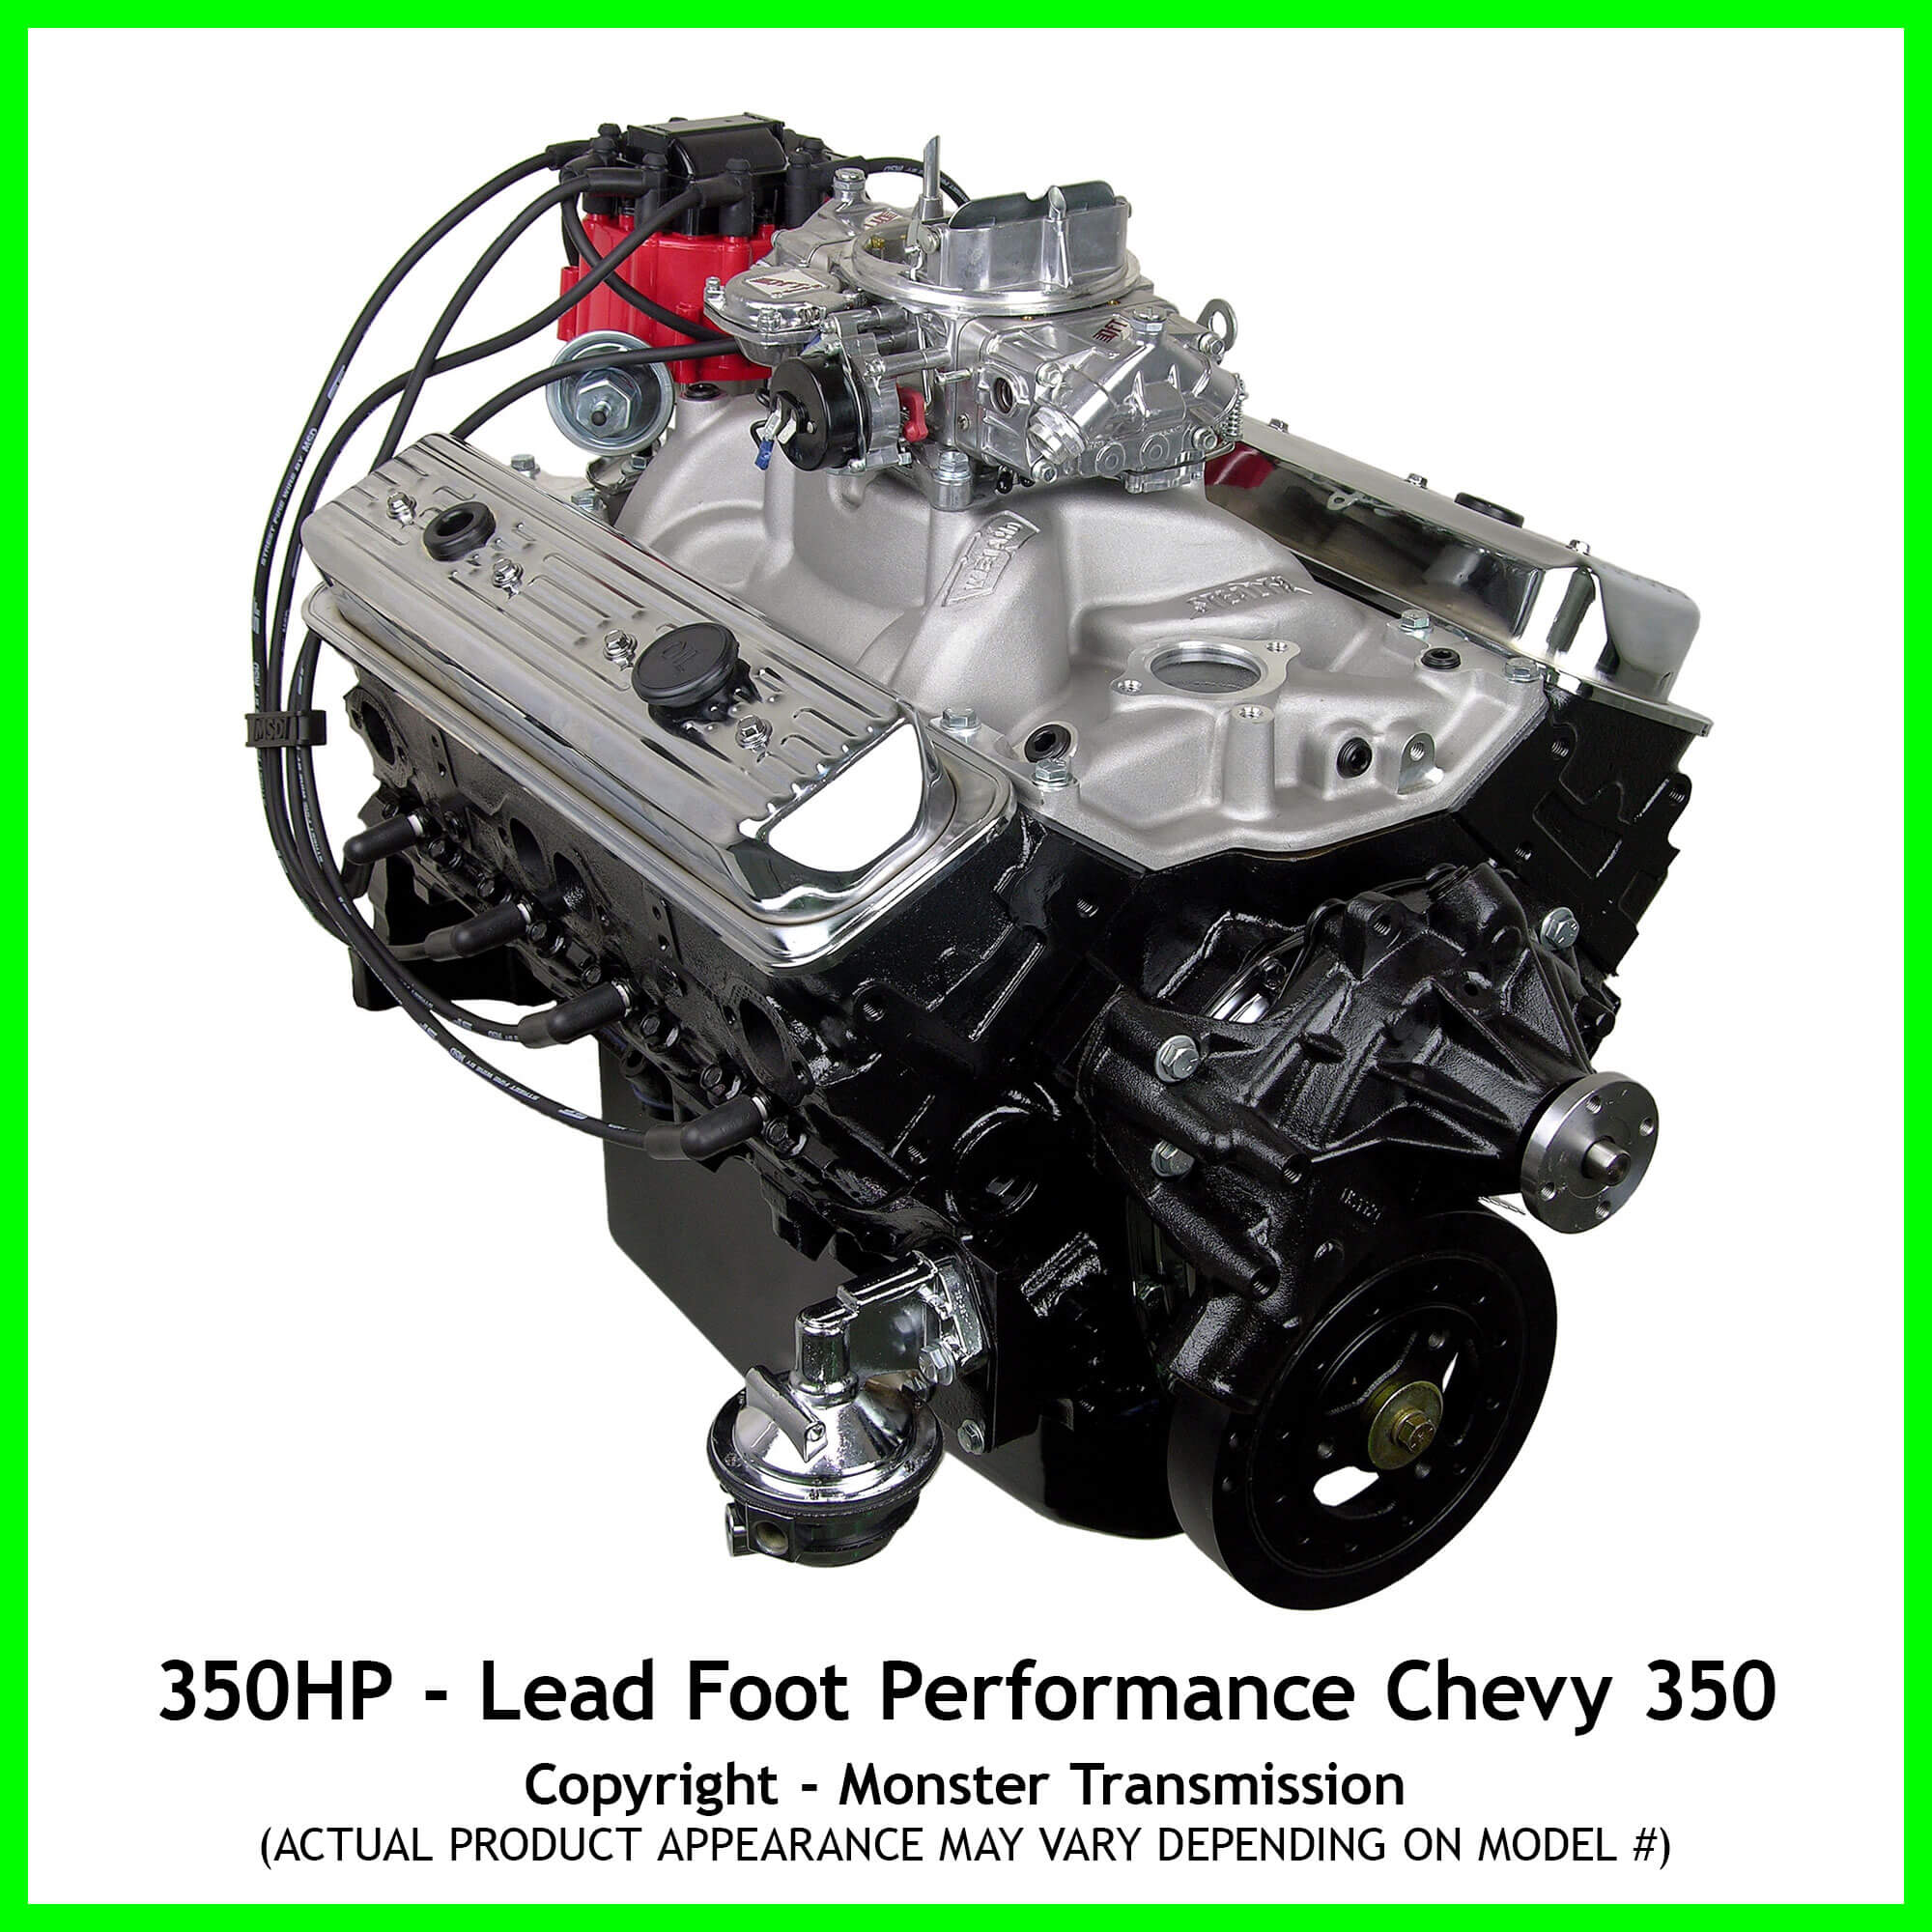 lead foot performance new modified chevy 350 engine. Black Bedroom Furniture Sets. Home Design Ideas